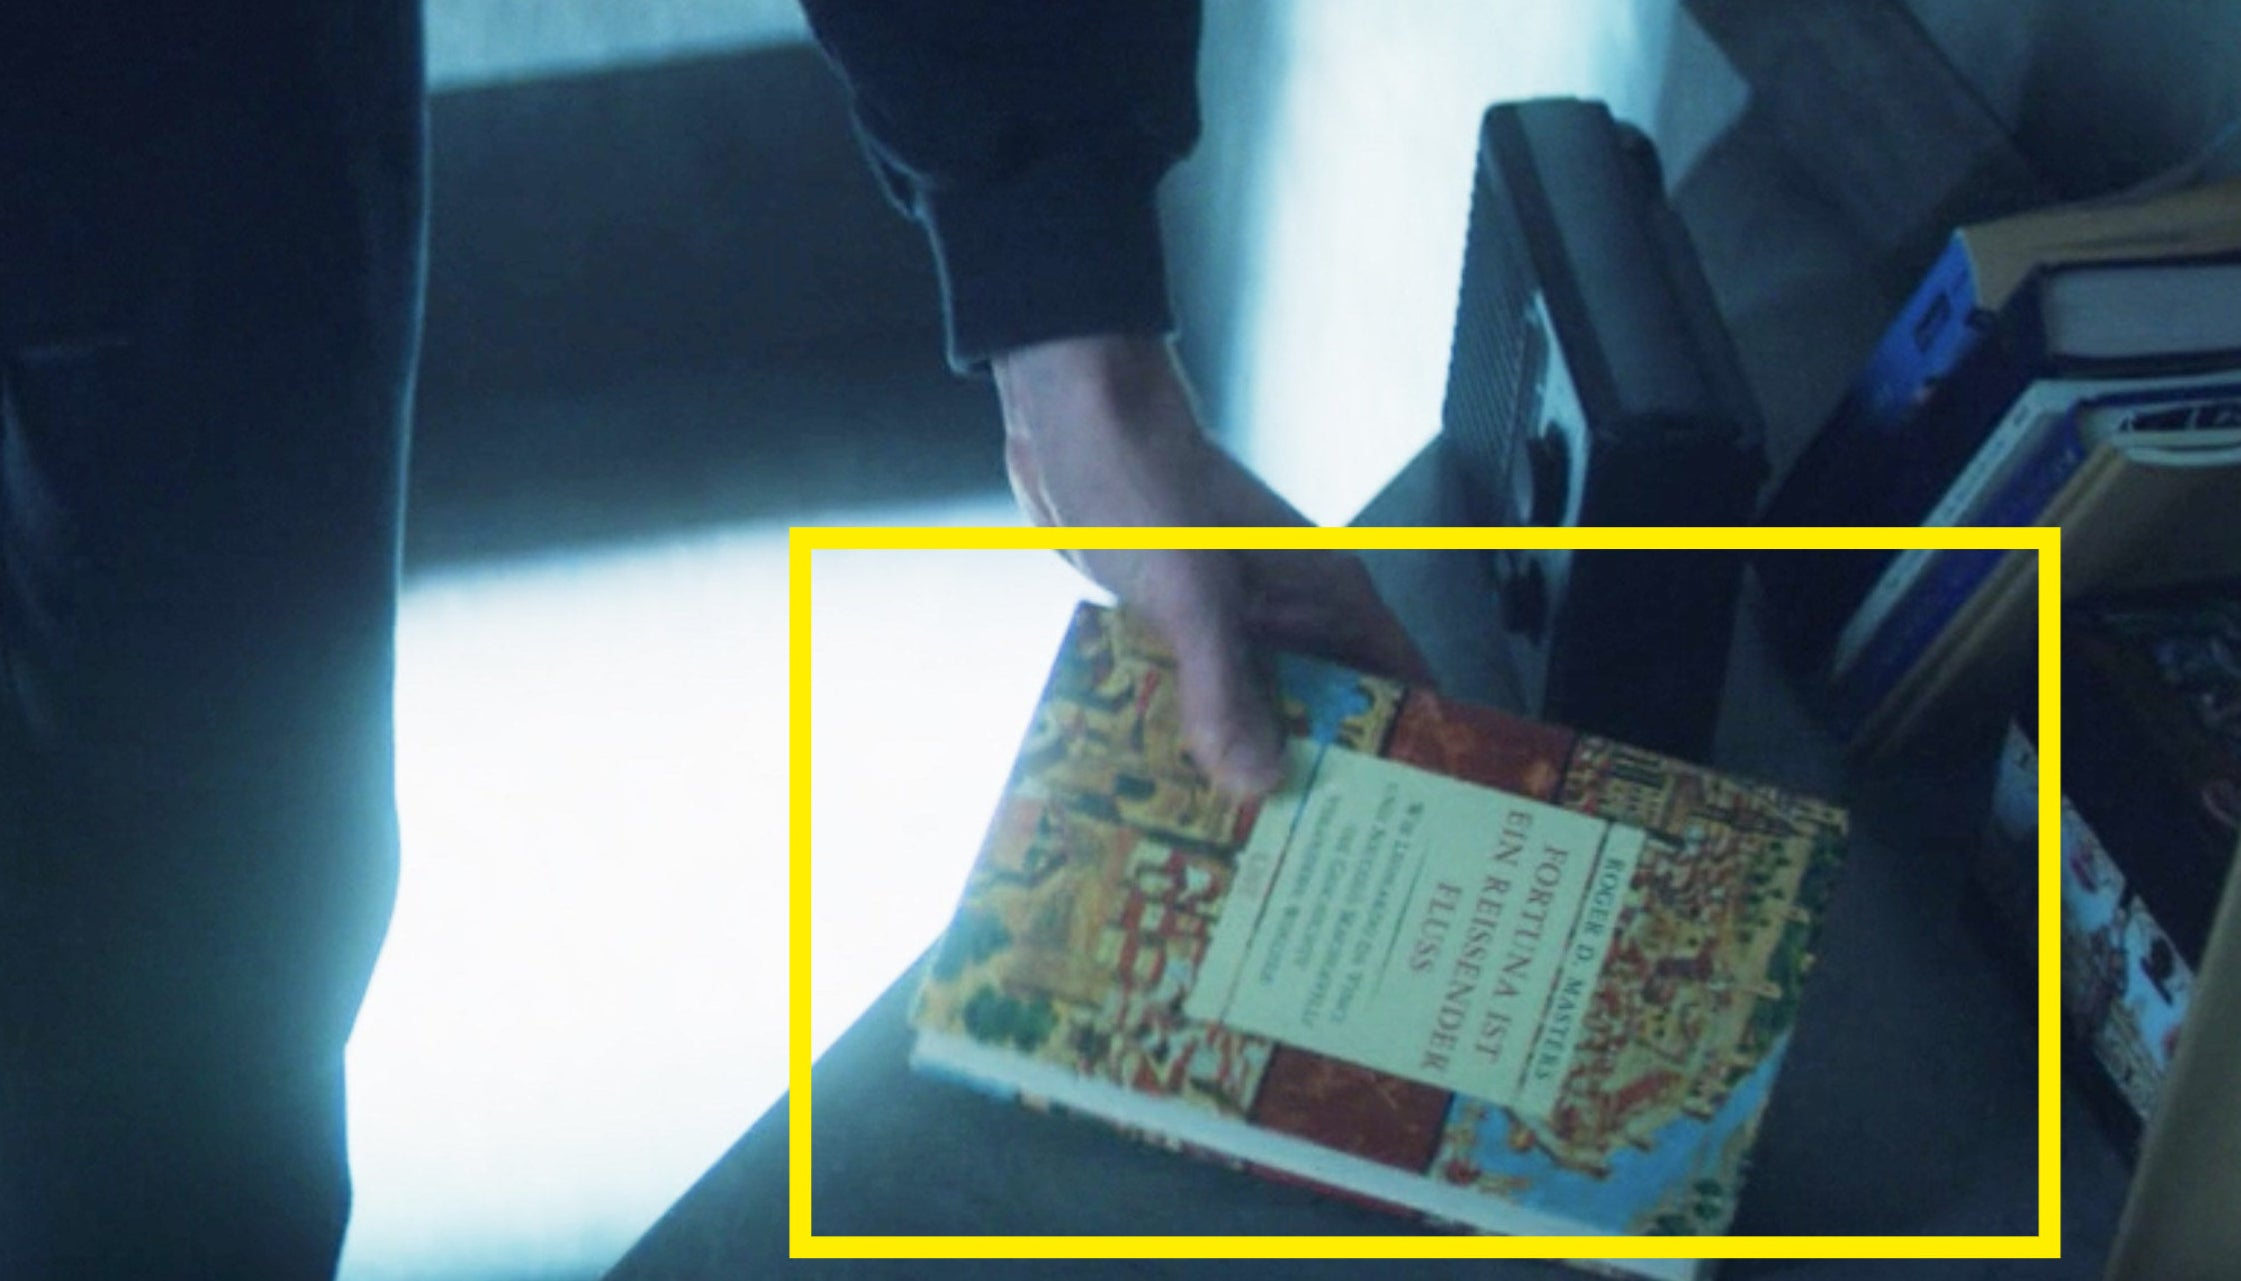 A close-up of Zemo holding his book